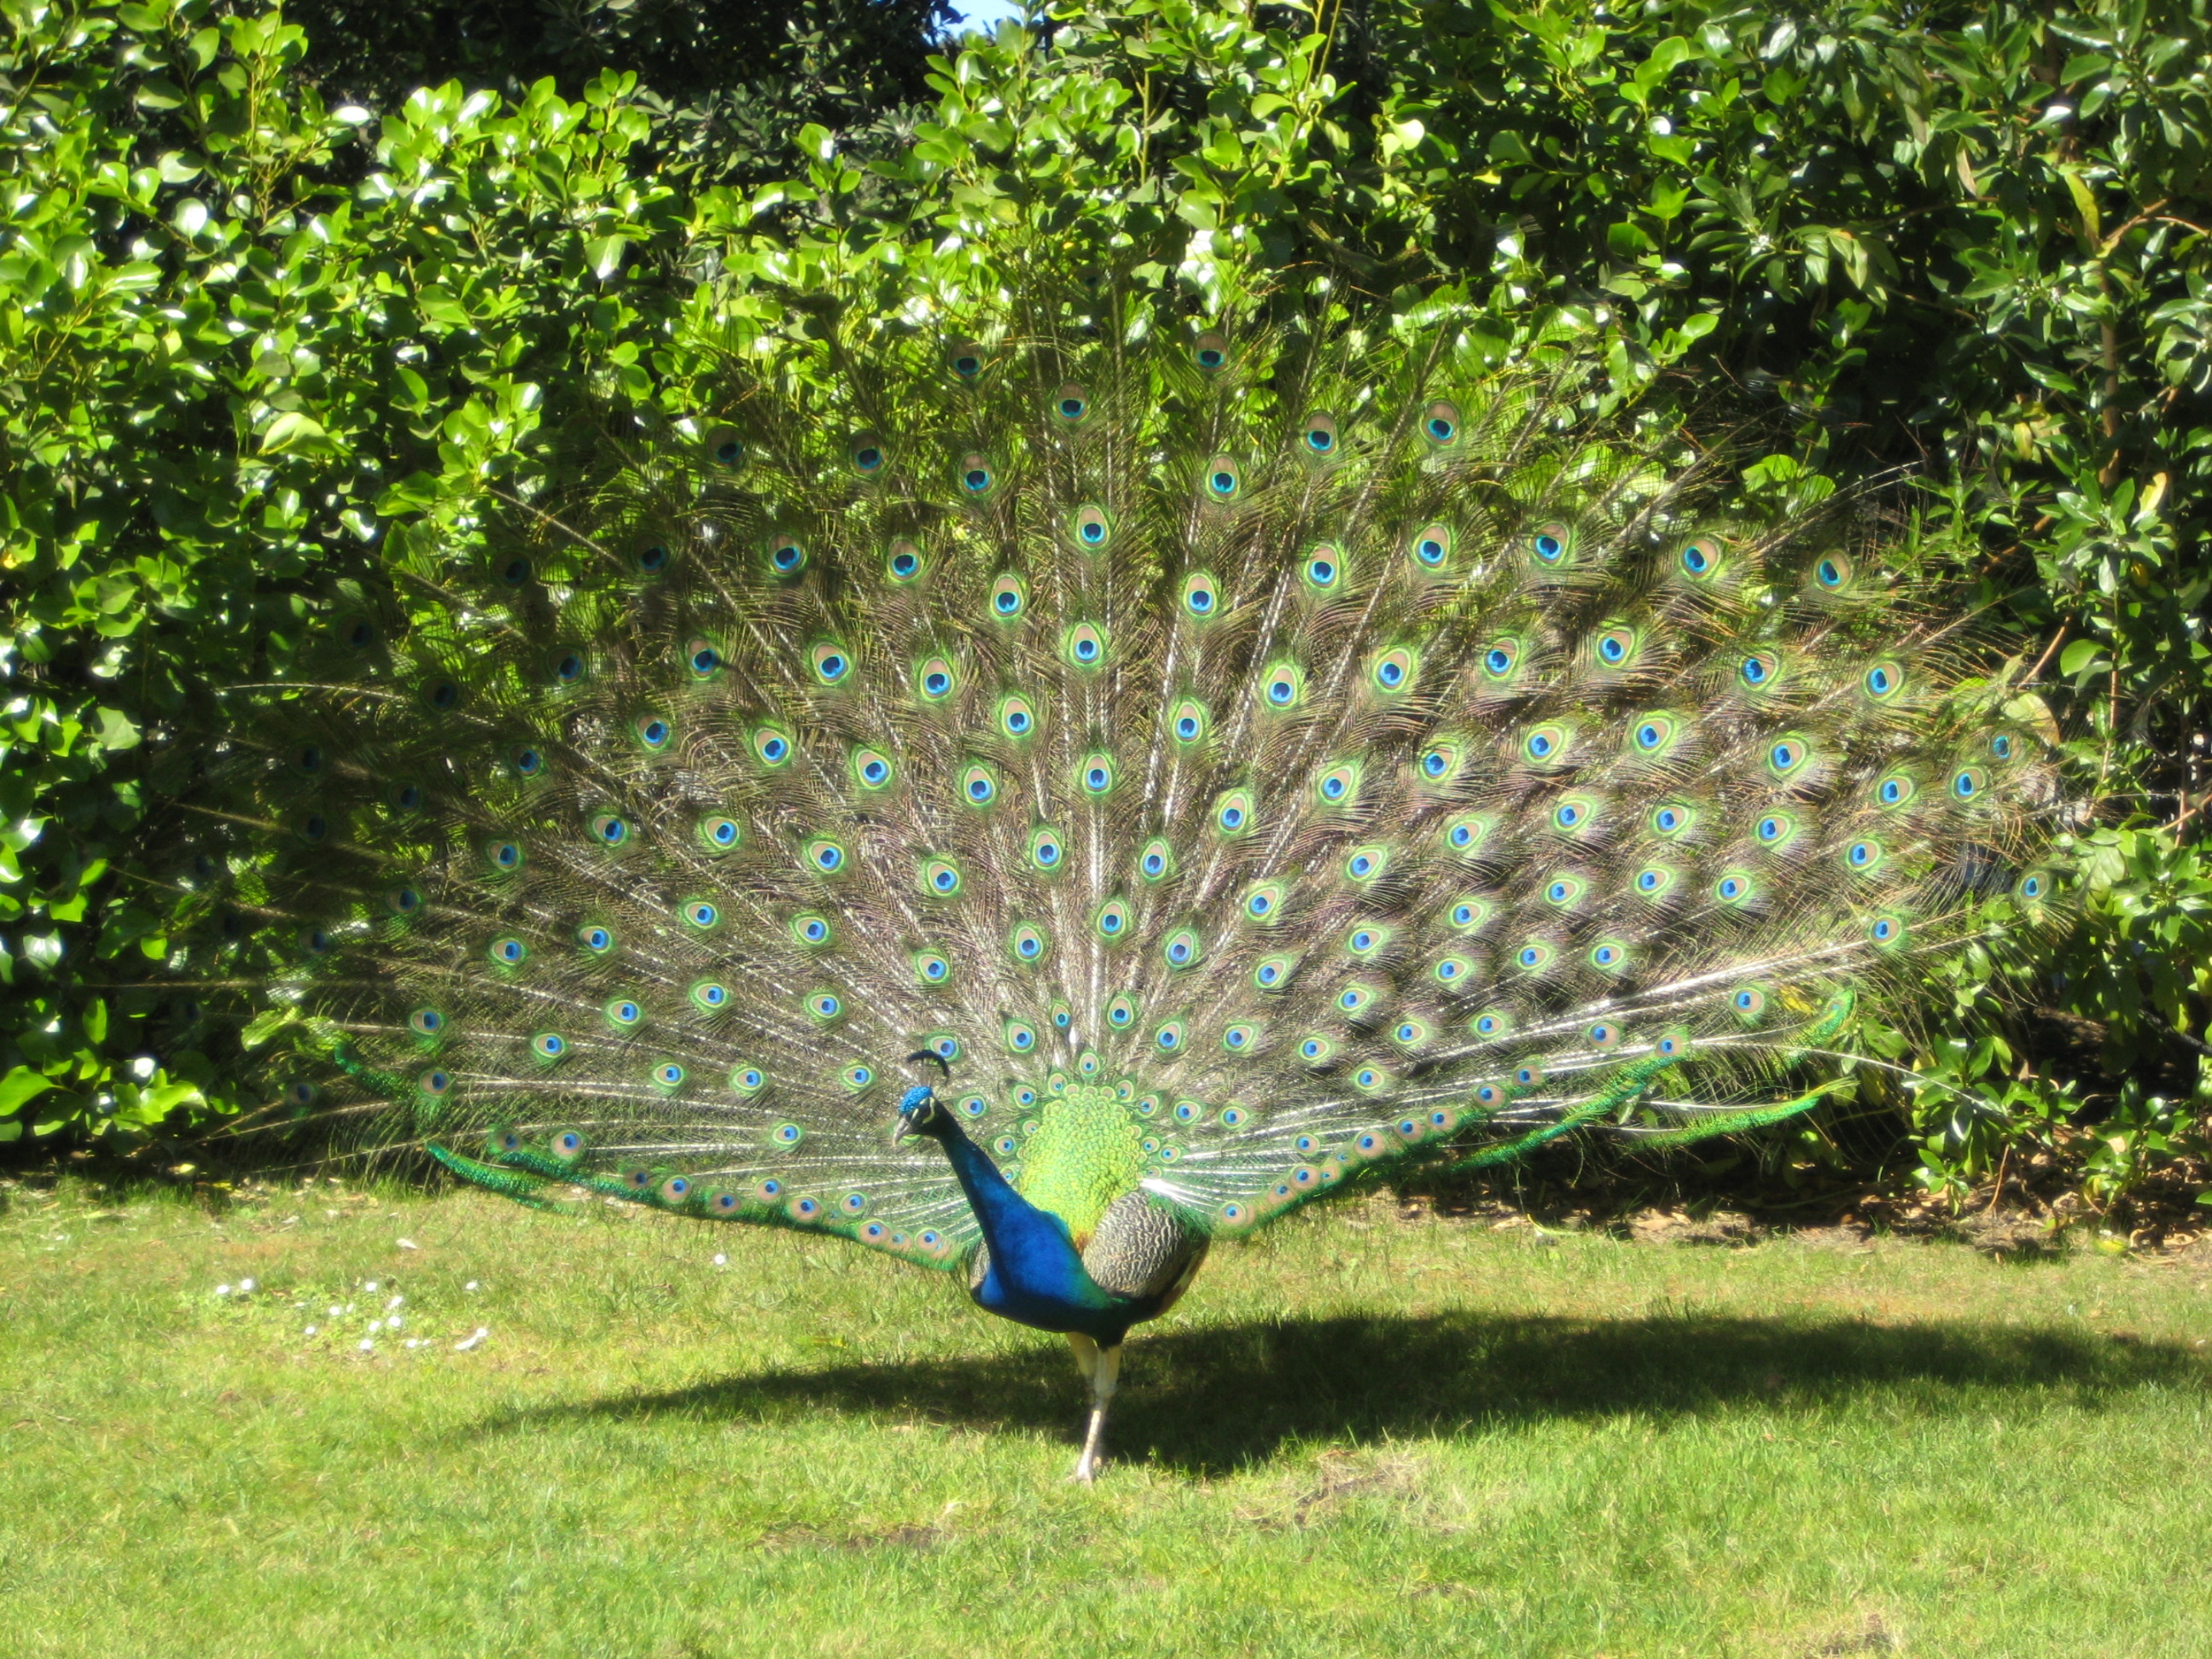 Description peacock 2 jpg